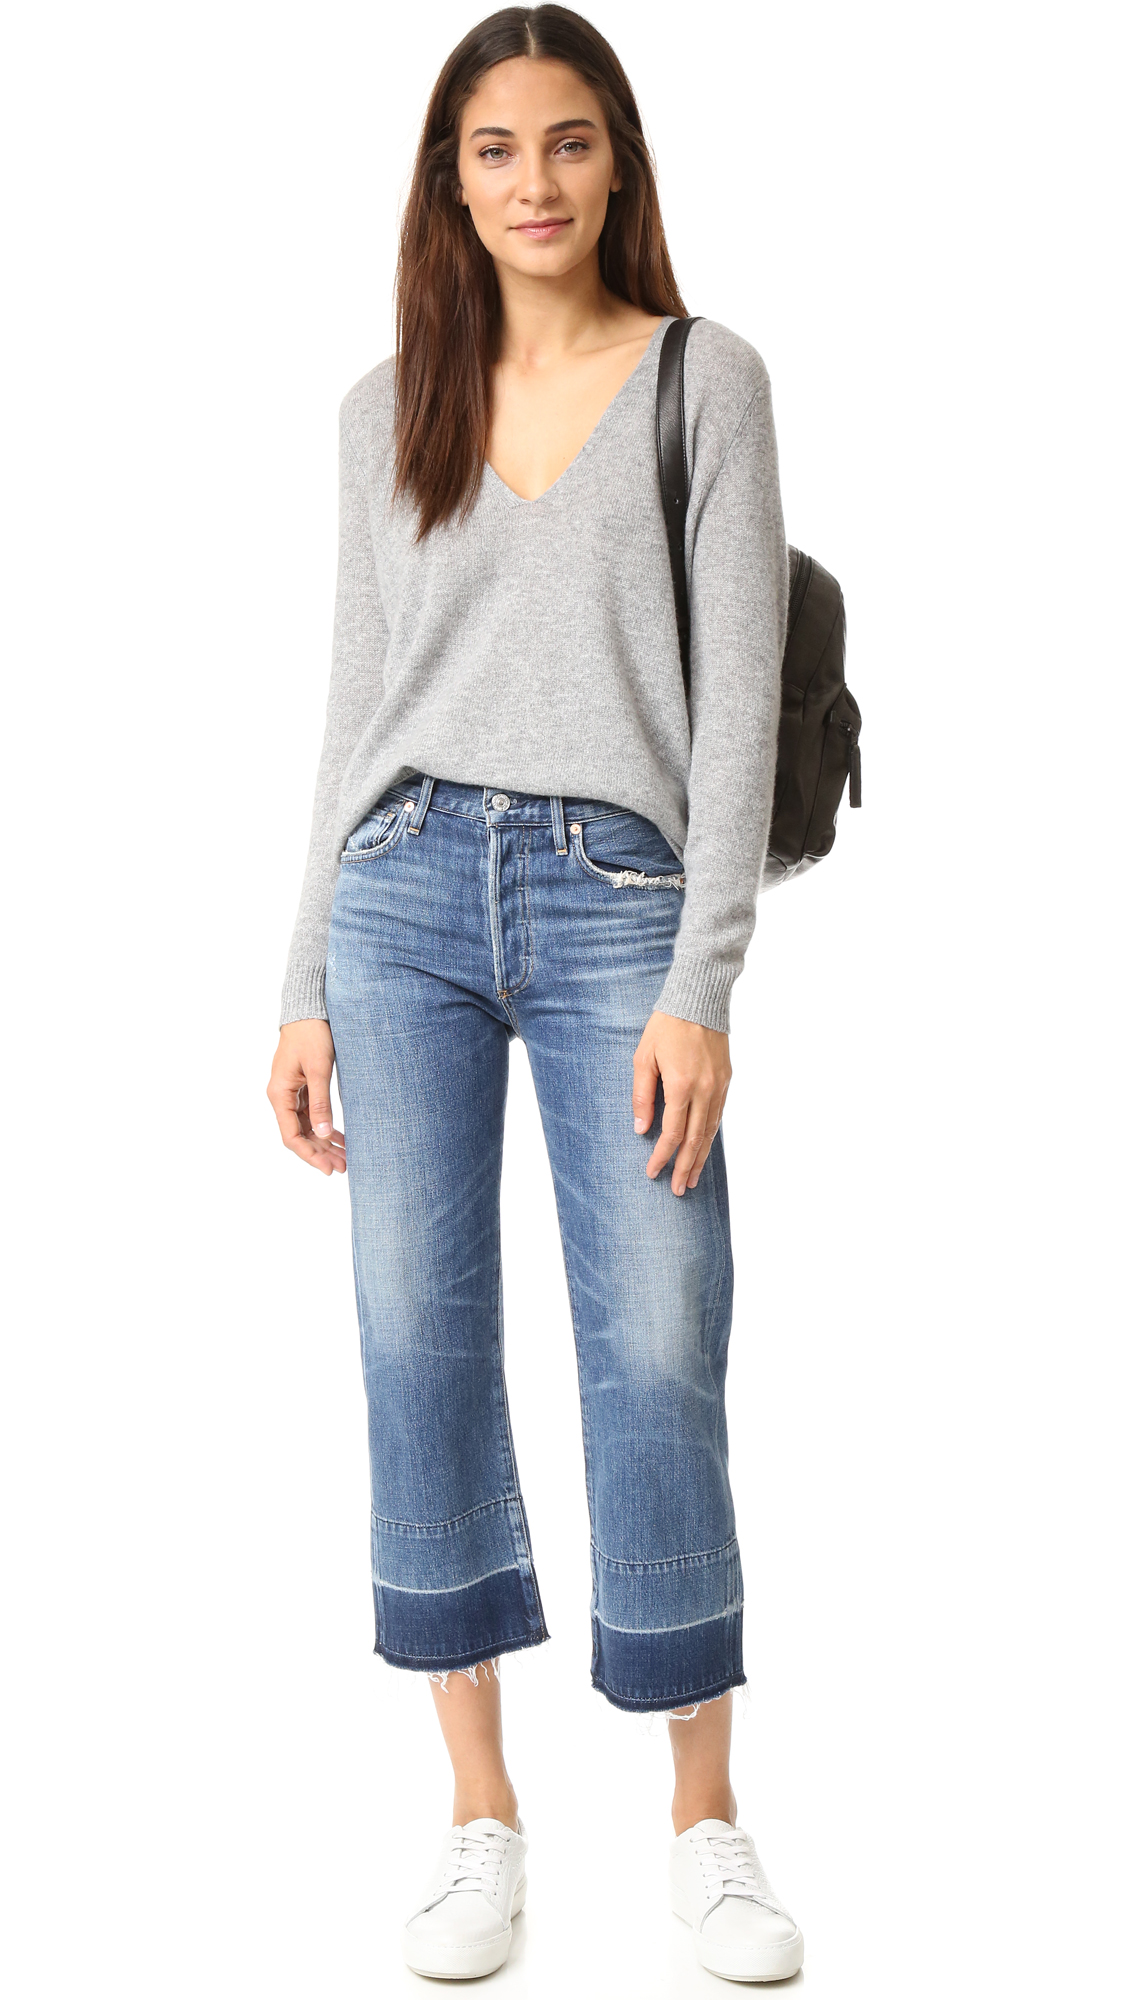 Buy Cheap Clearance Purchase Sale Online Cora Crop Undone Hem in Fade Out Citizens Of Humanity Excellent Designer t0SMKCs